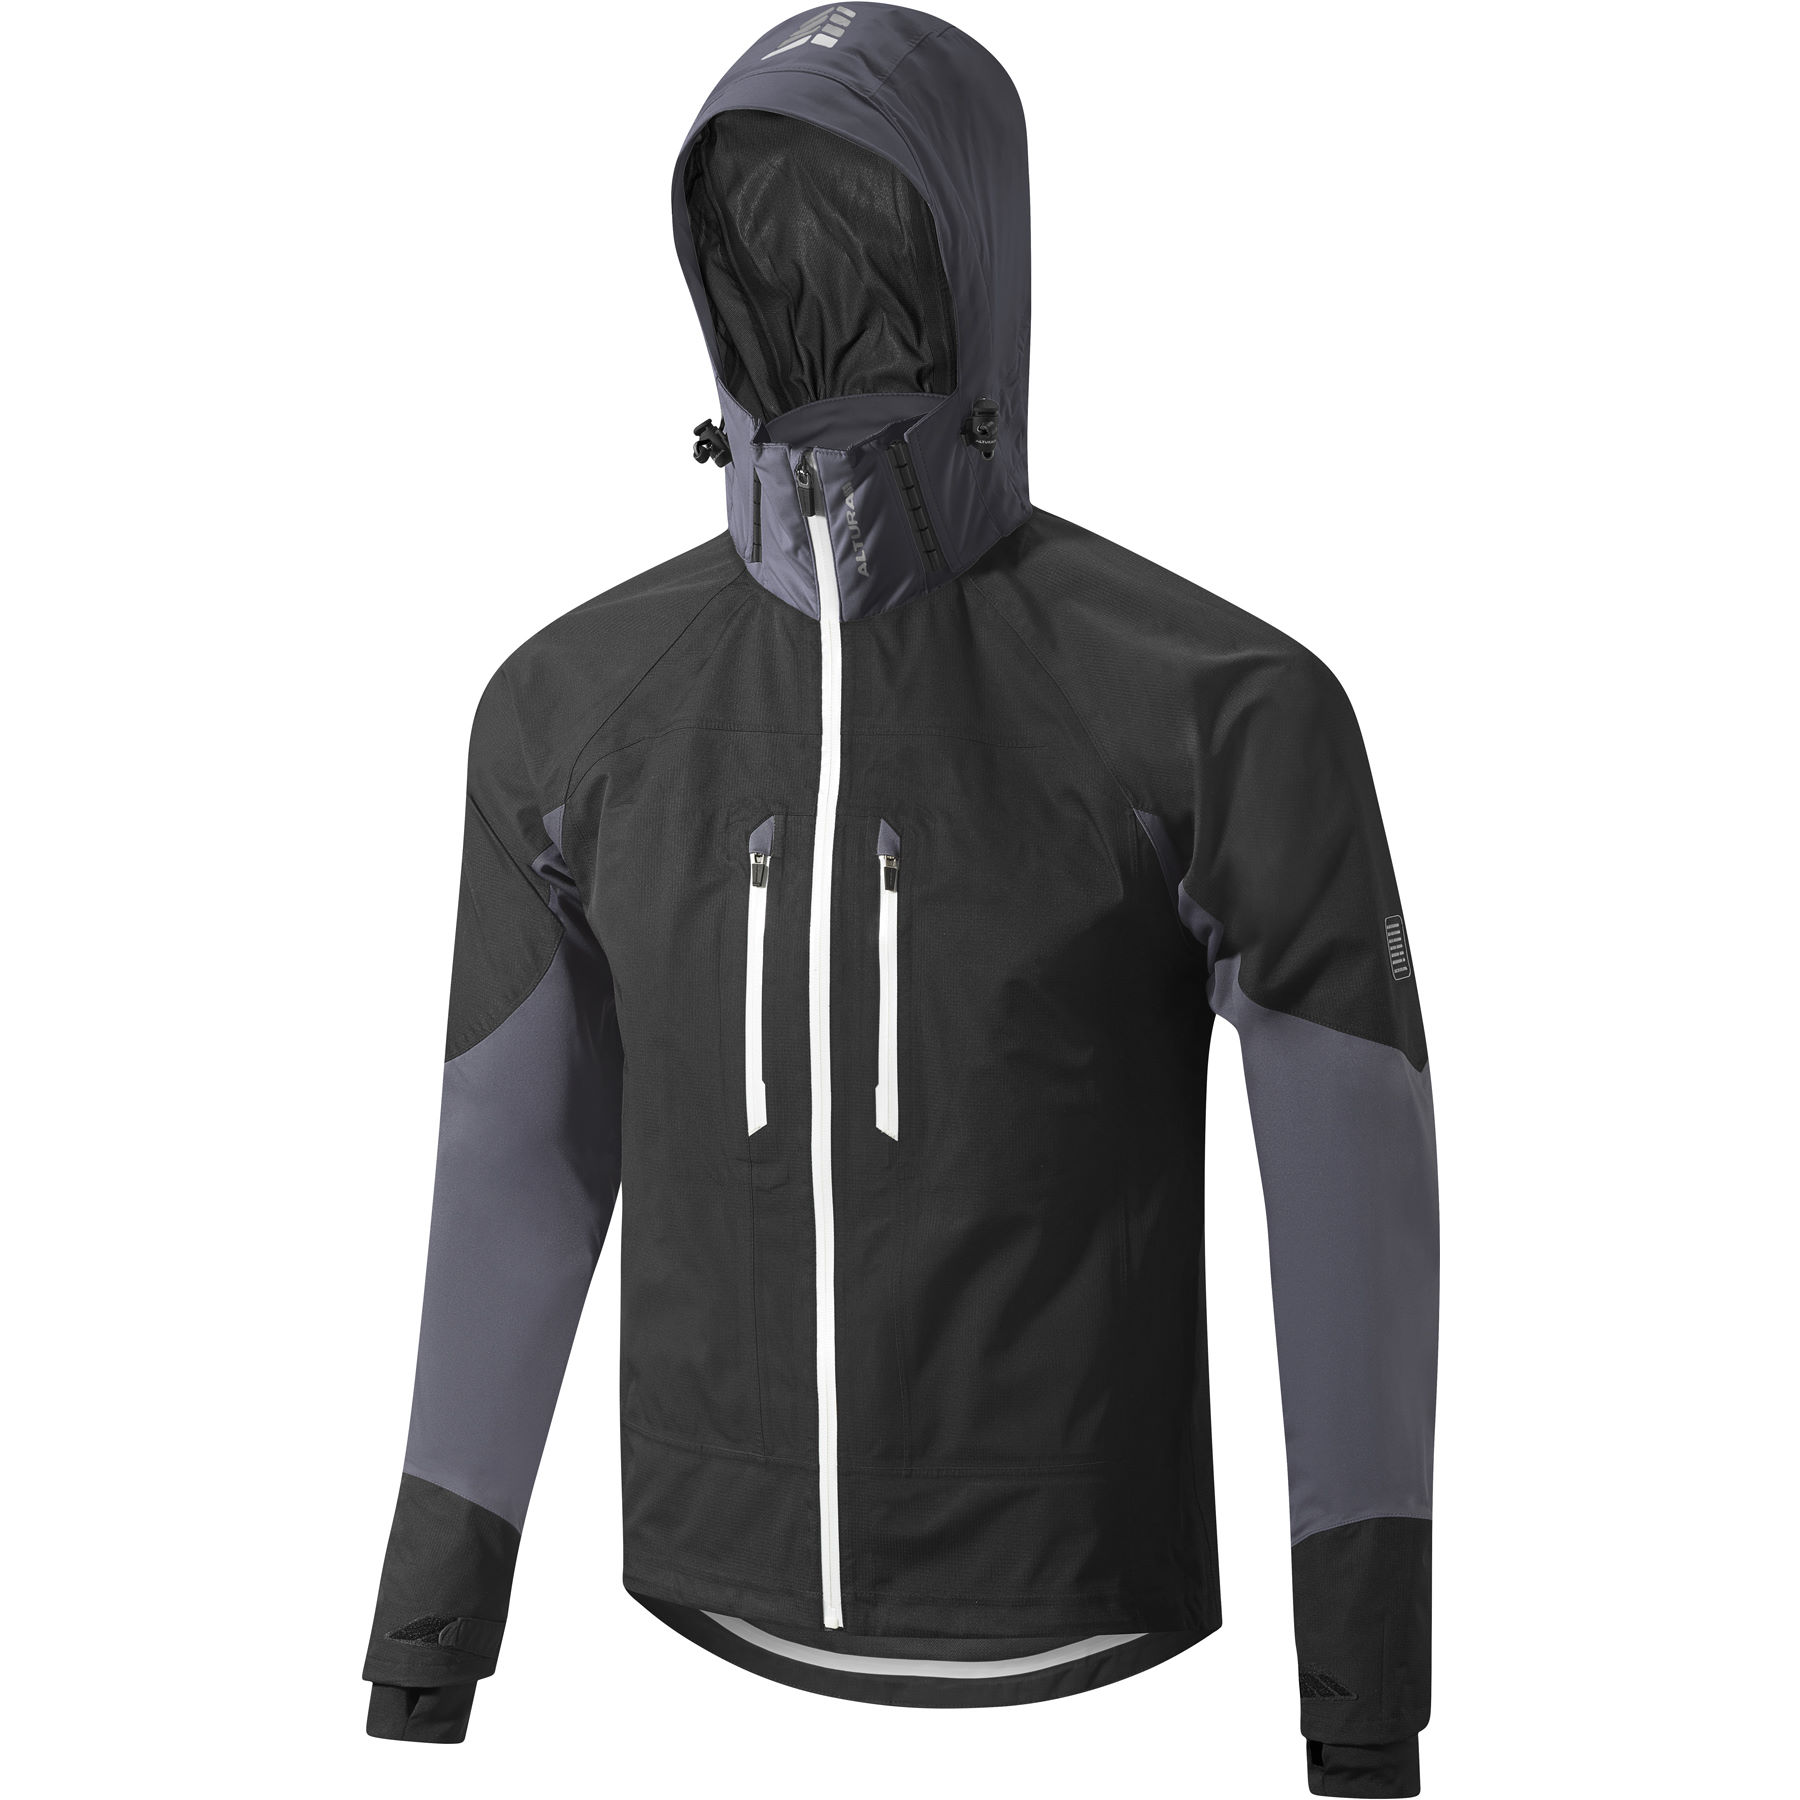 wiggle.com | Altura Attack 360 Waterproof Jacket | Cycling